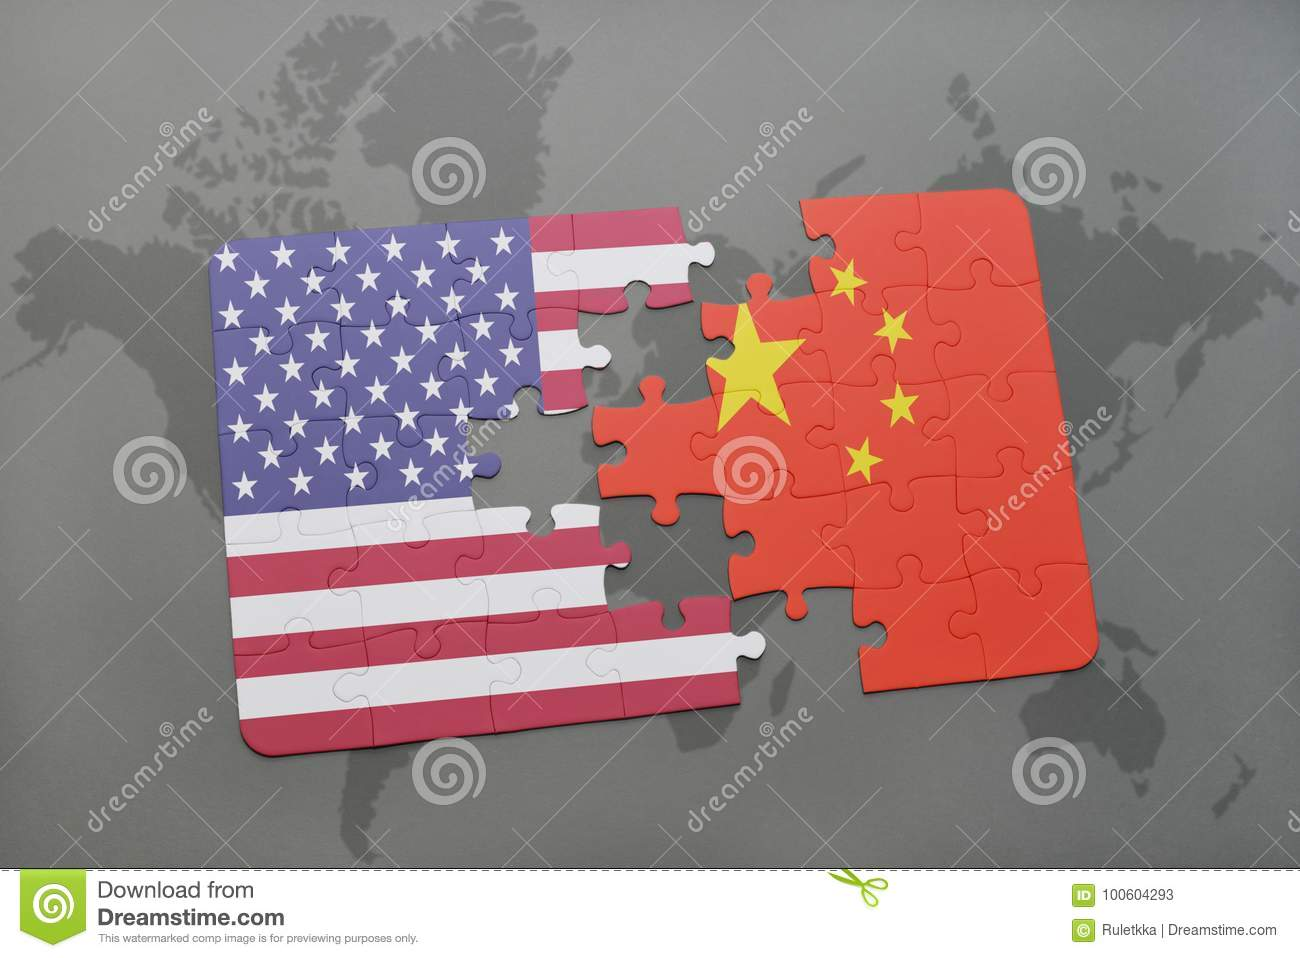 China Map Puzzle.Puzzle With The National Flag Of United States Of America And China